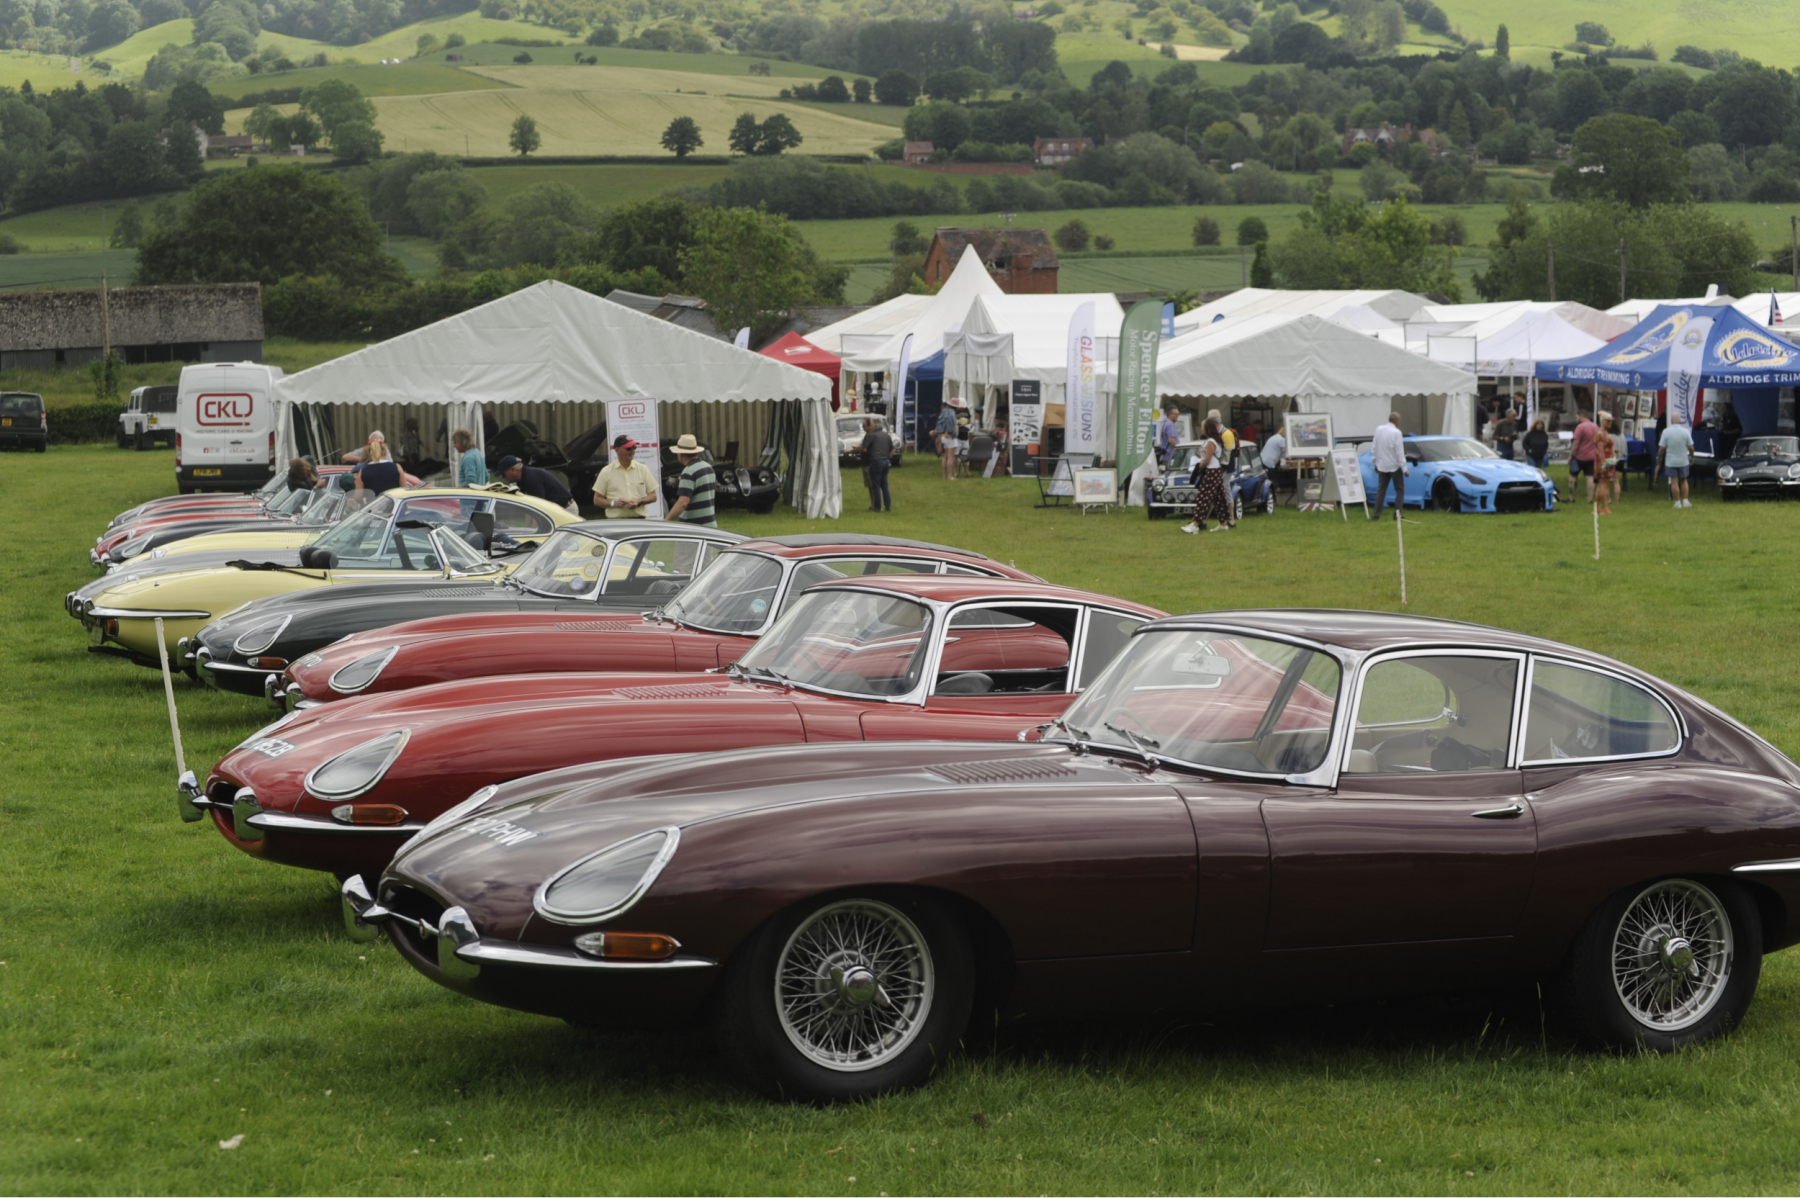 E-type-60-Saturday-photo-by-Abigail-Humphries-288